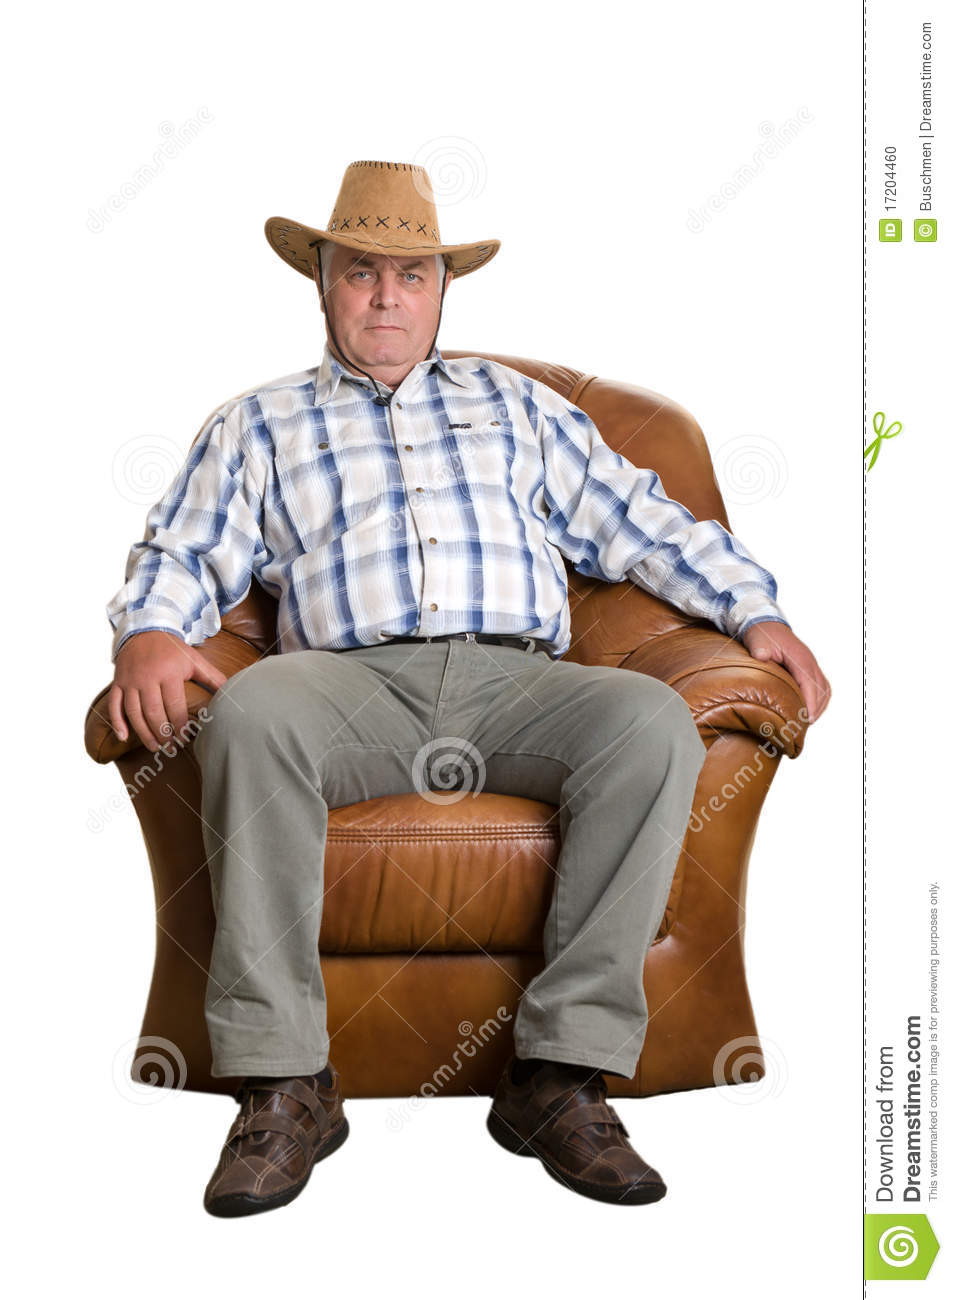 Stock Photo Elderly Man Cowboy Hat Sitting Chair Image17204460 on gray rocking chair